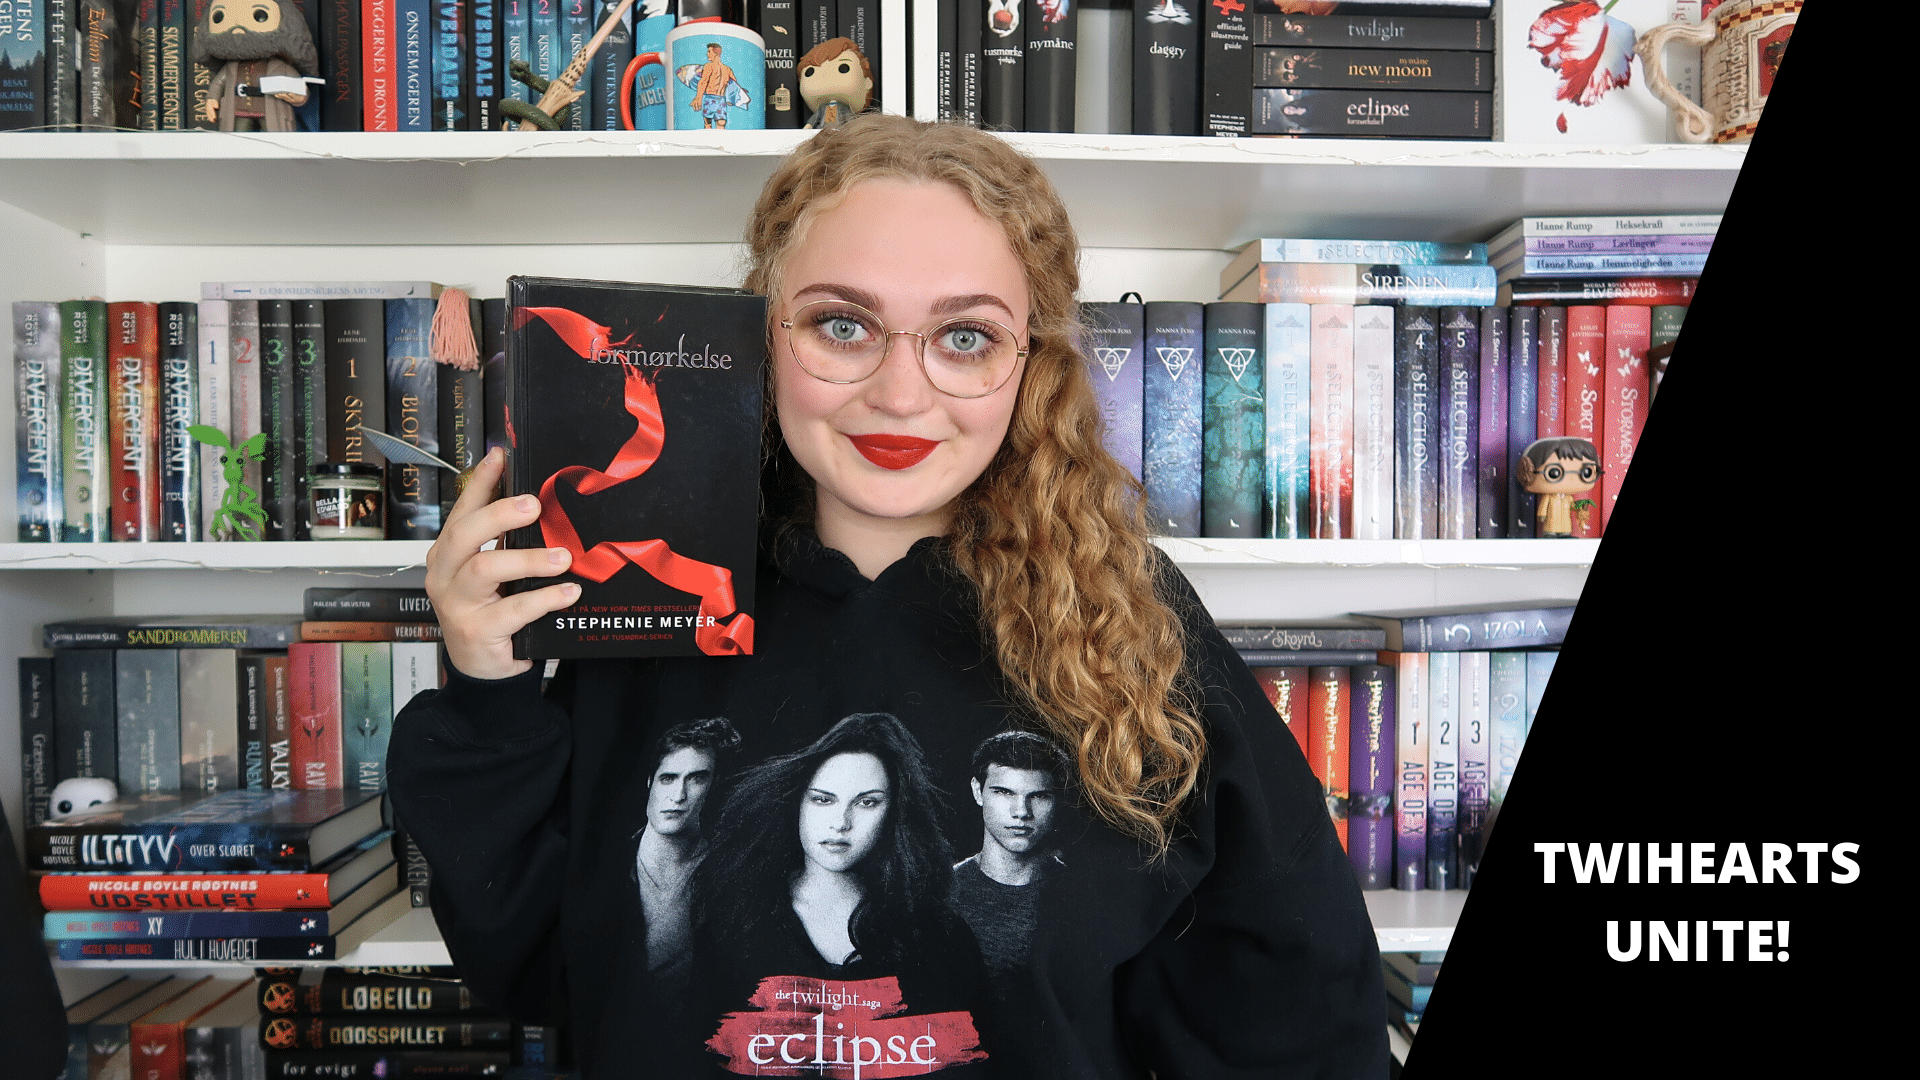 Stephenie Meyer, Twilight, Twilight sagaen, YA, young adult, vampyr, kærlighed, ungdomsbog